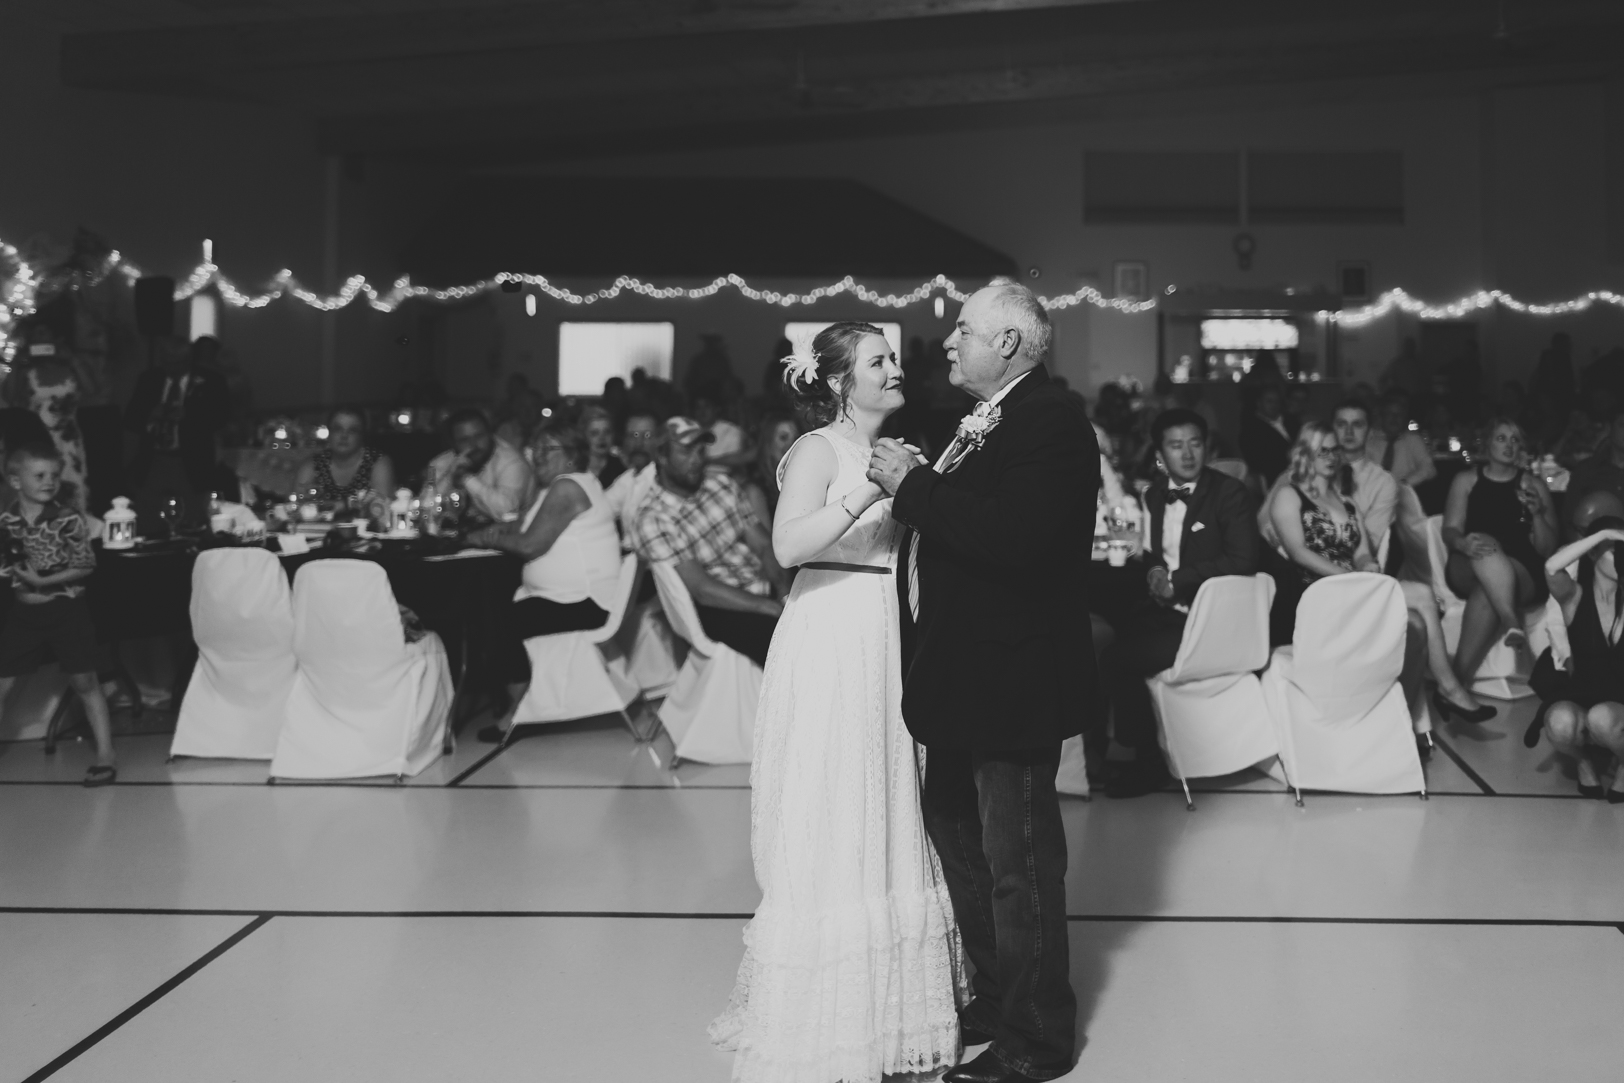 Parents Dance